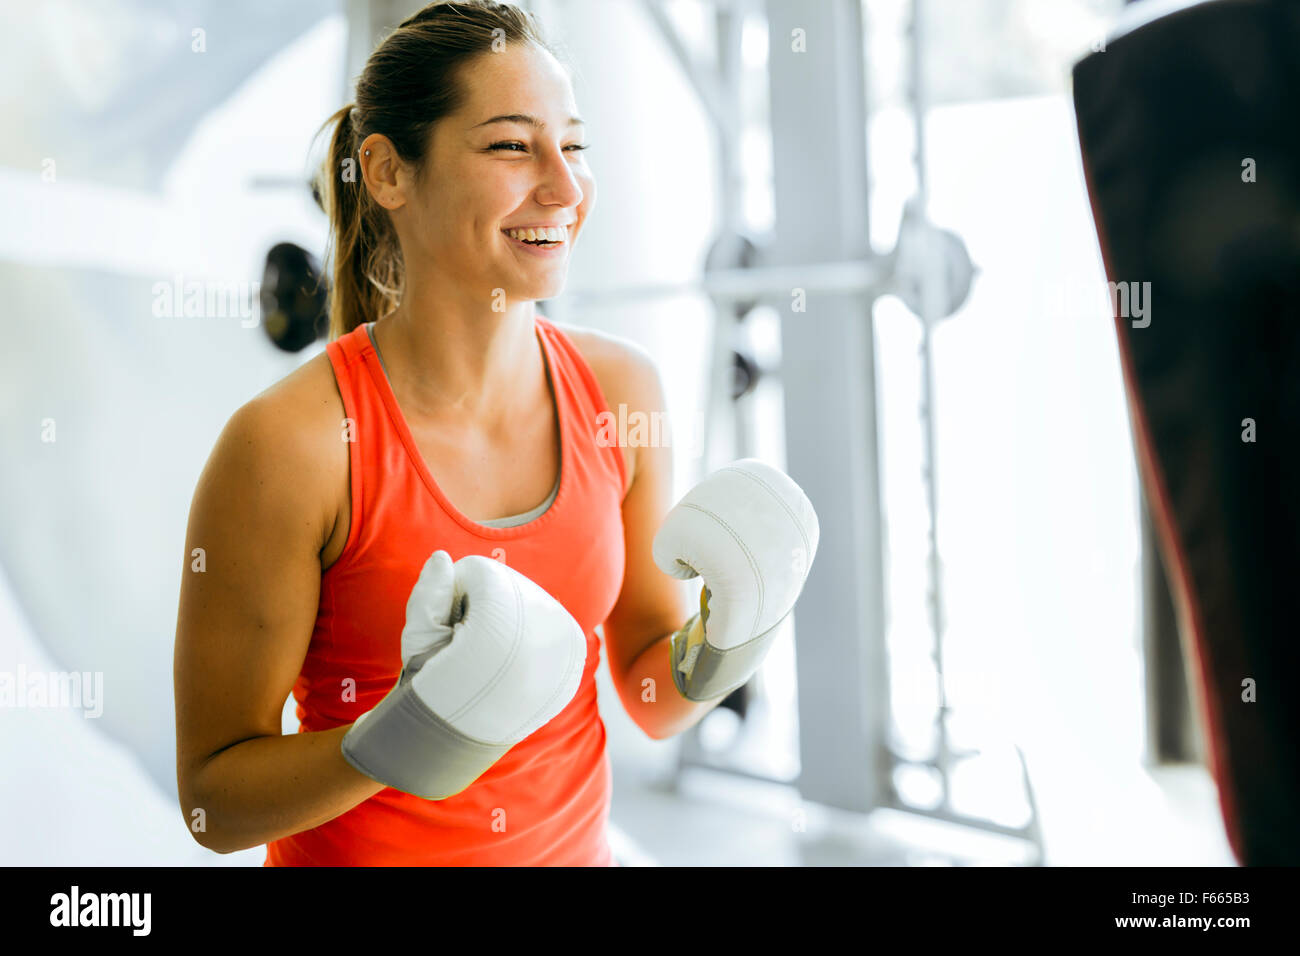 Young woman boxing and training in a gym - Stock Image